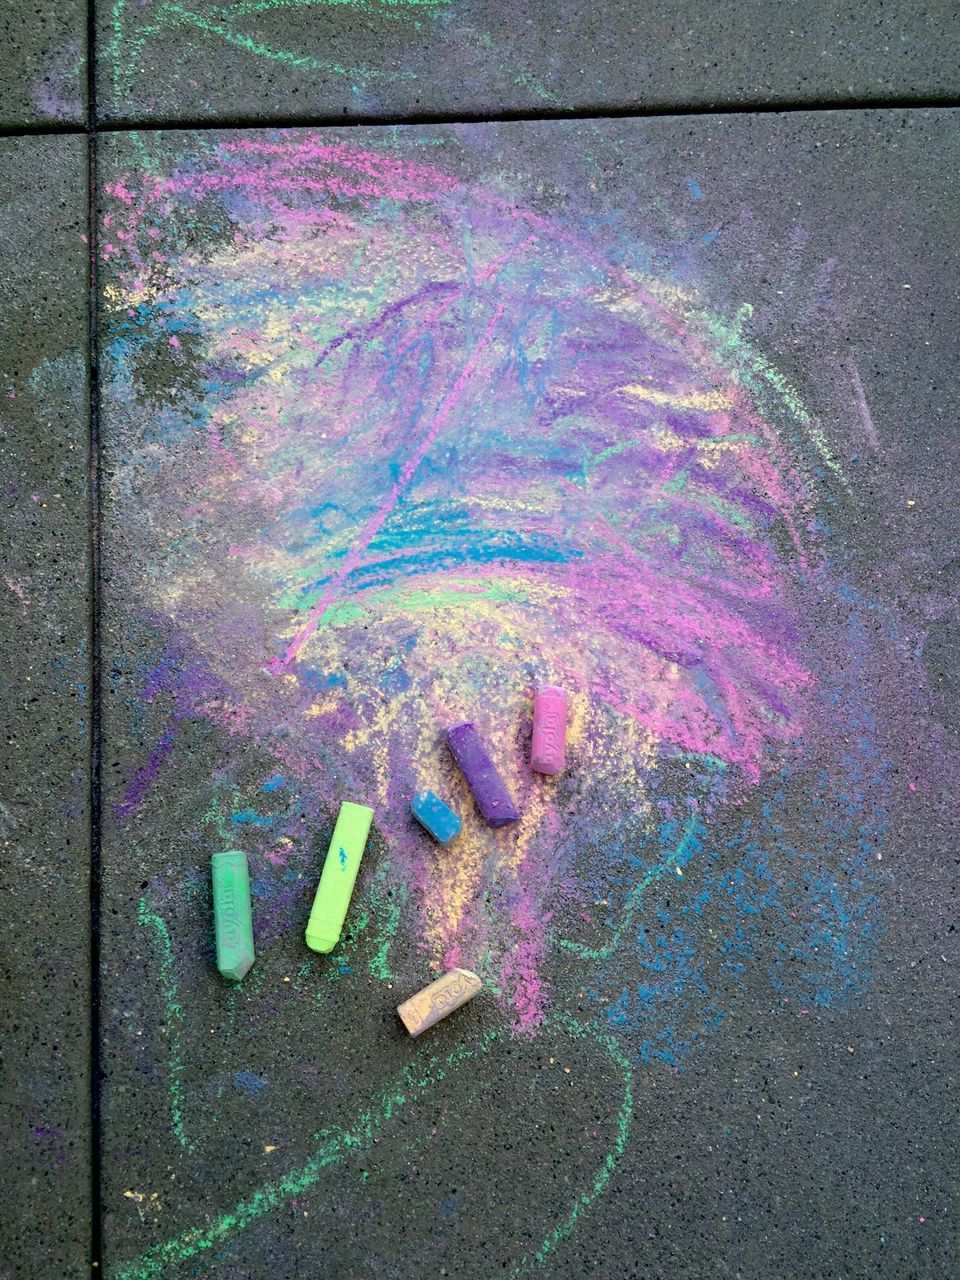 Close-Up High Angle View Of Colorful Chalks